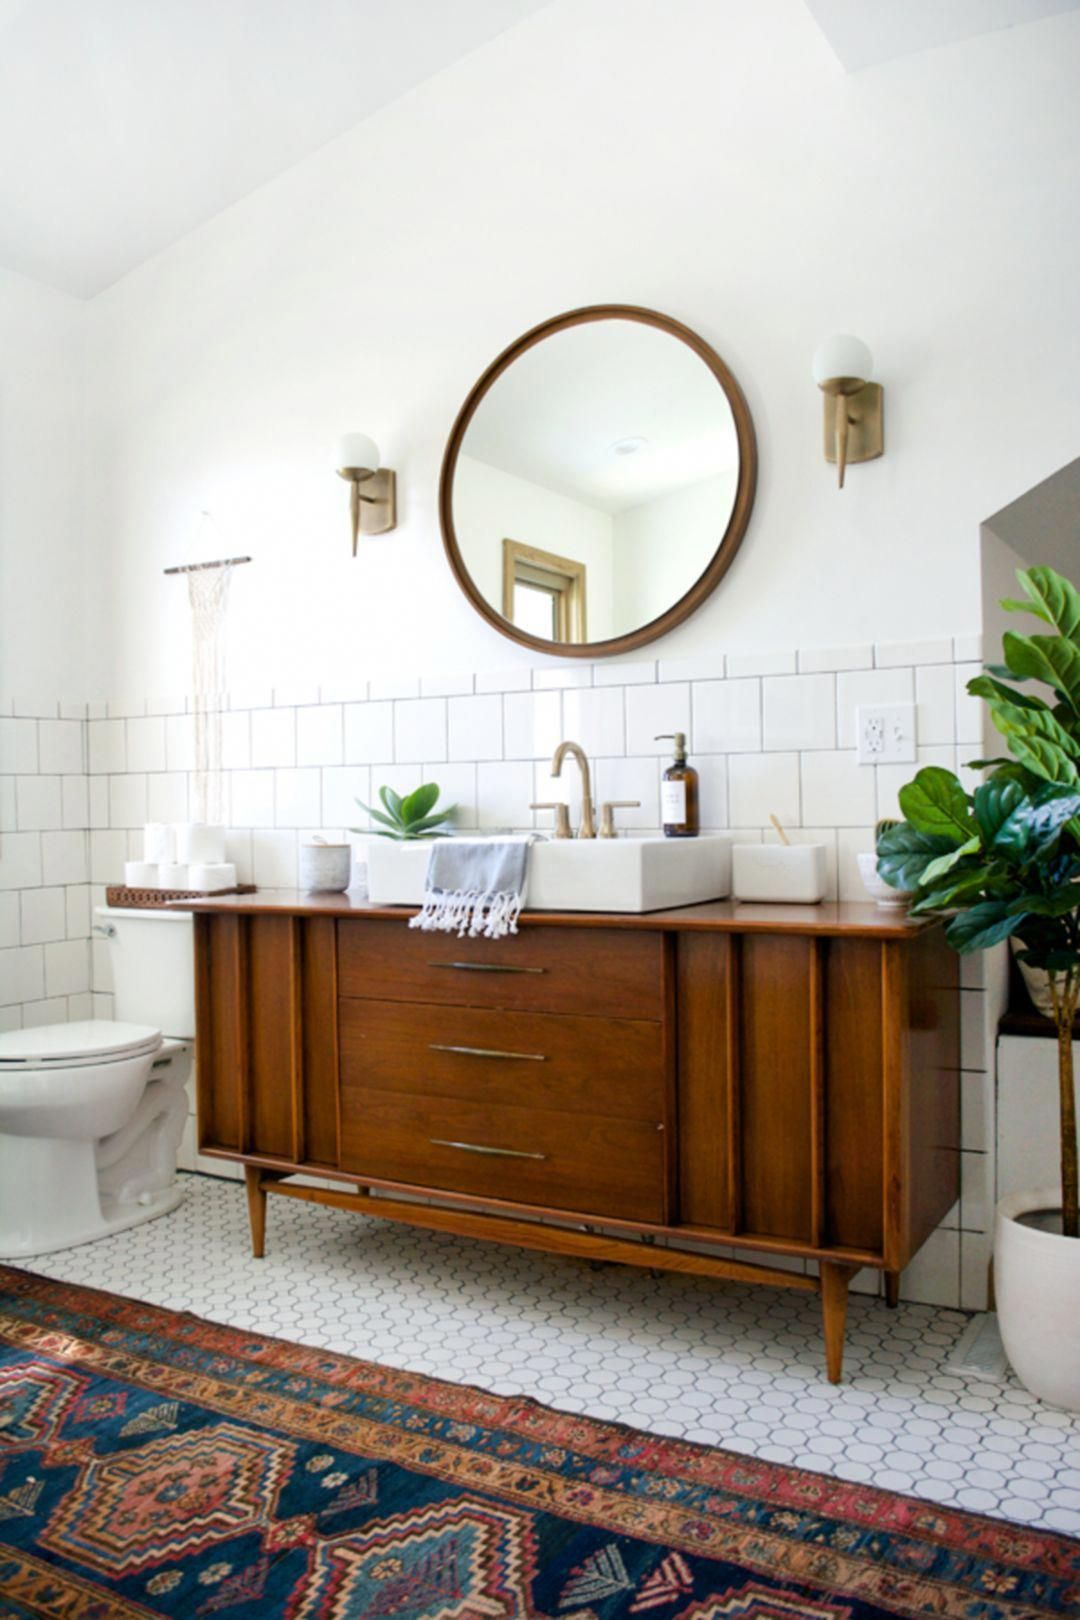 Modernhomedecorbathroom Modern Vintage Bathroom Mid Century Modern Bathroom Modern Bathroom Design